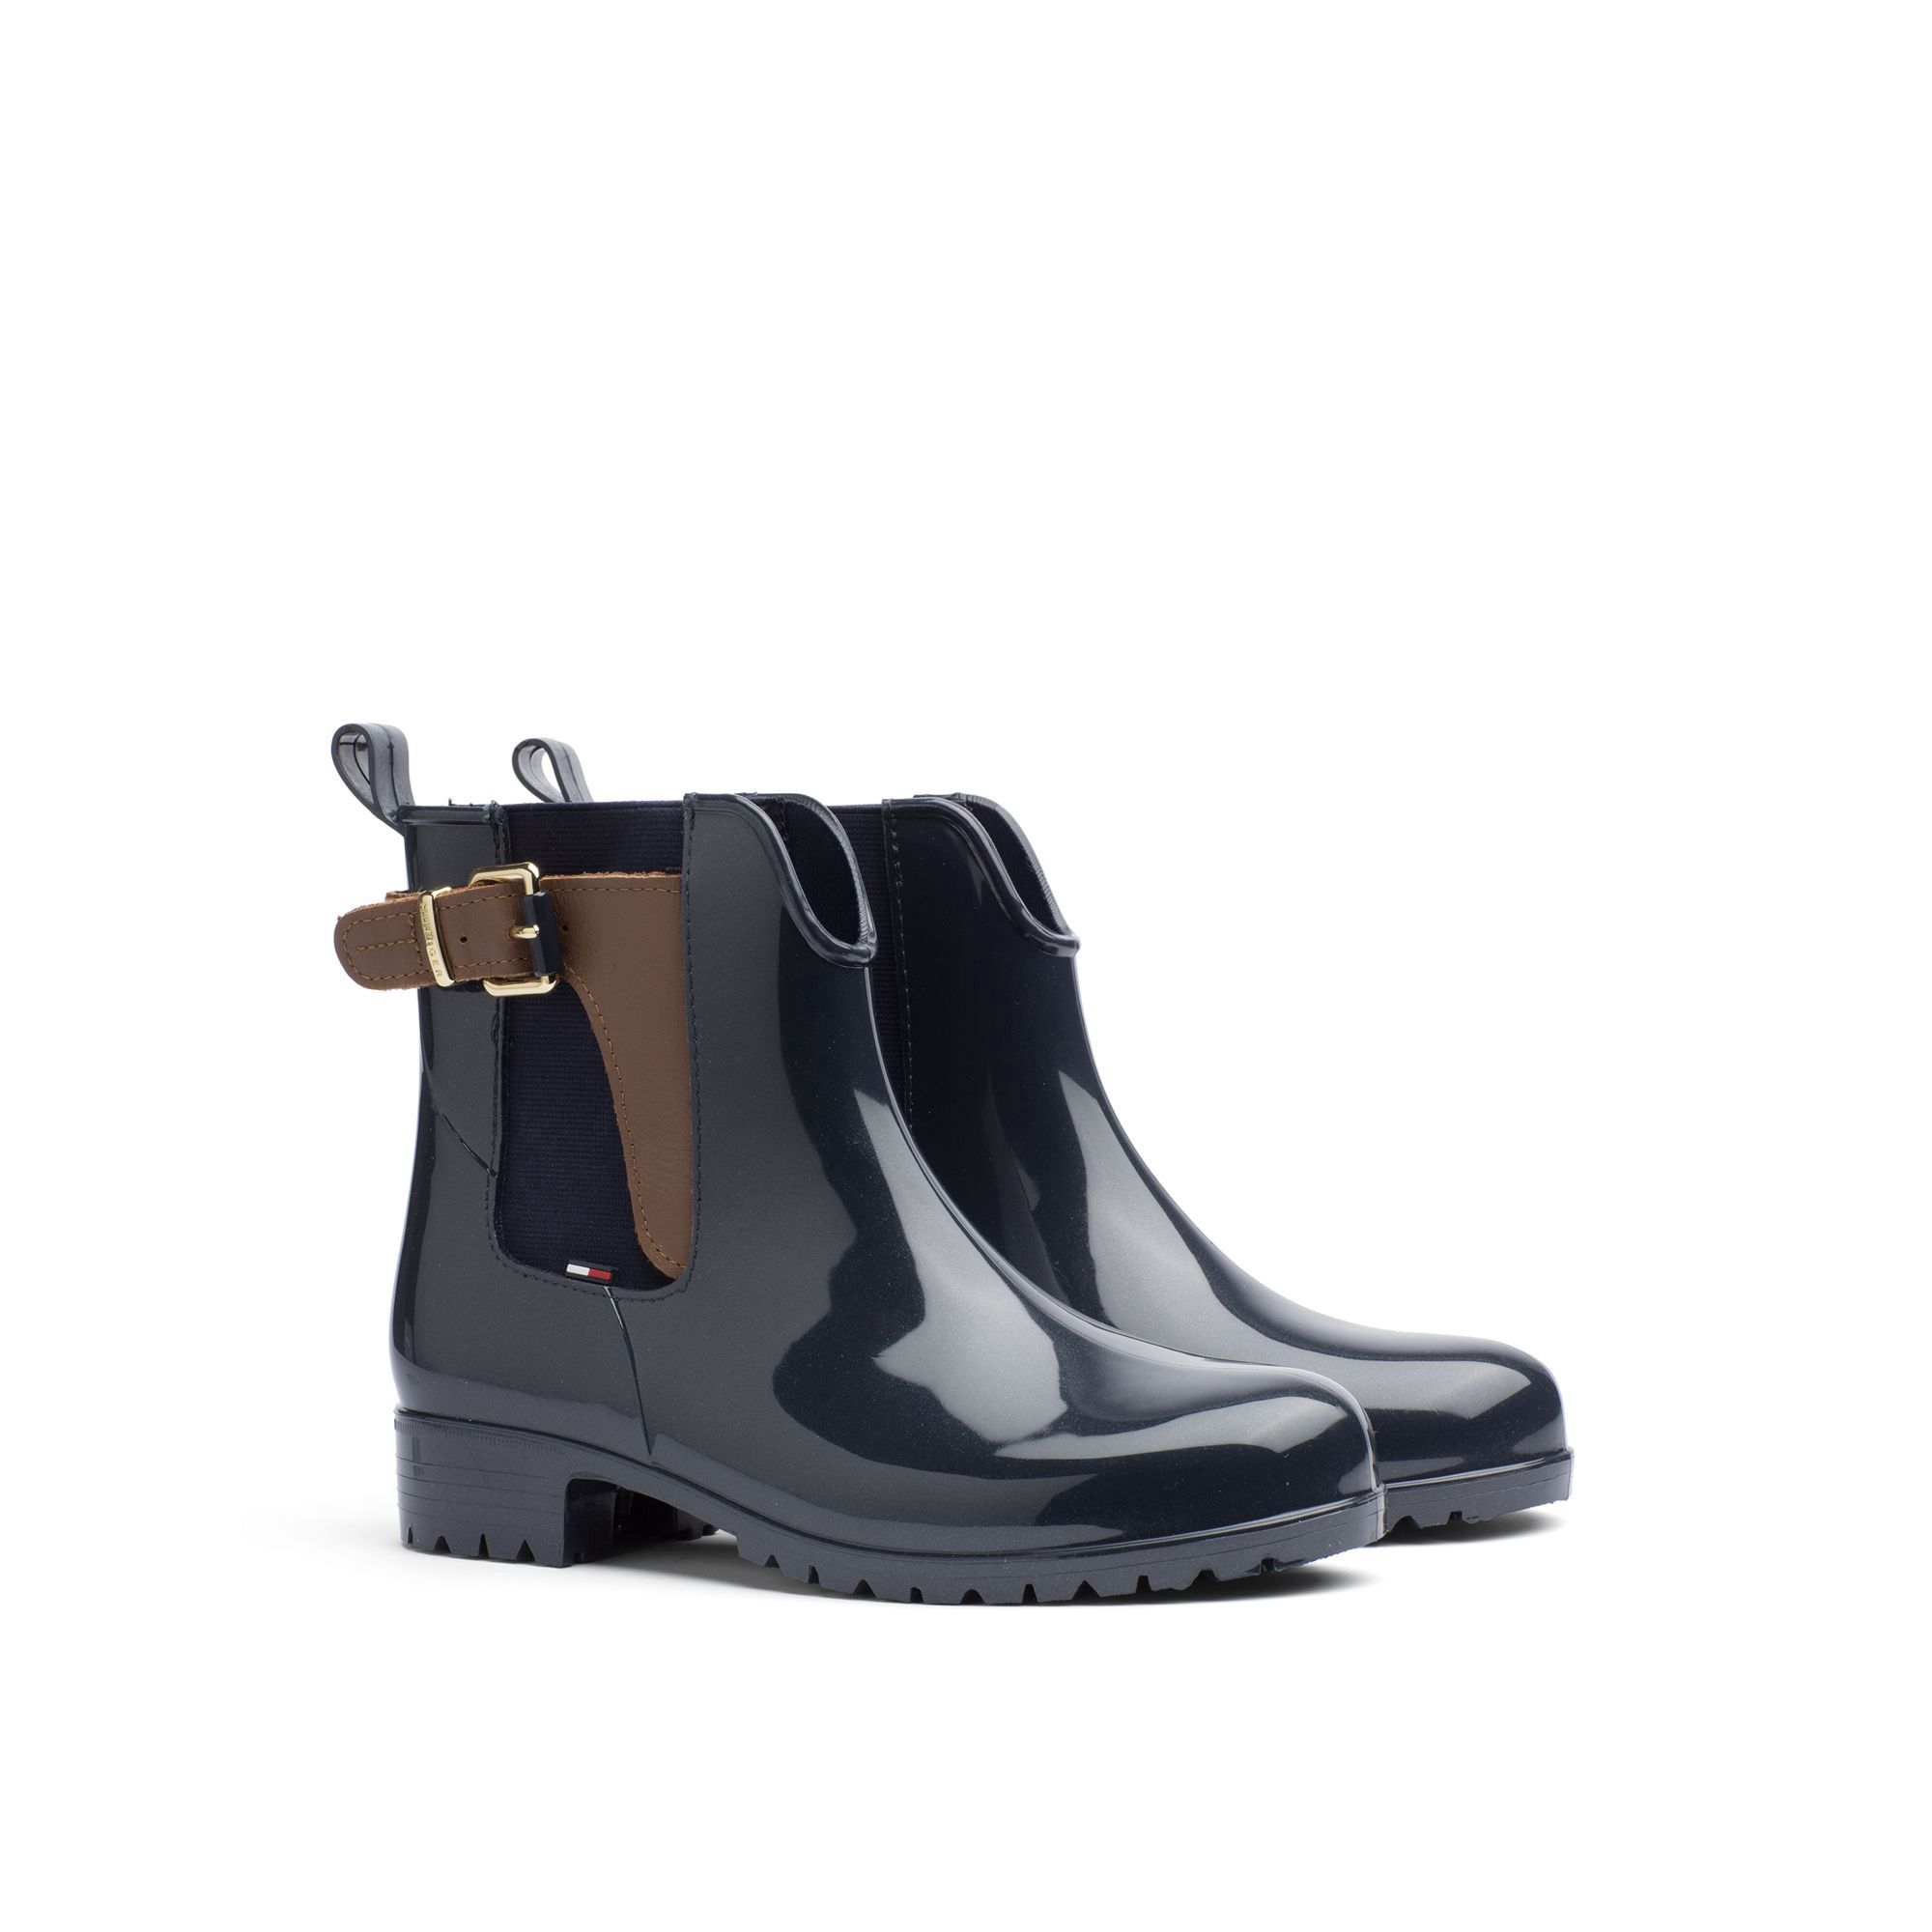 941d28c8 TOMMY HILFIGER BUCKLE RAIN BOOT - MIDNIGHT-WINTER COGNAC. #tommyhilfiger # shoes #